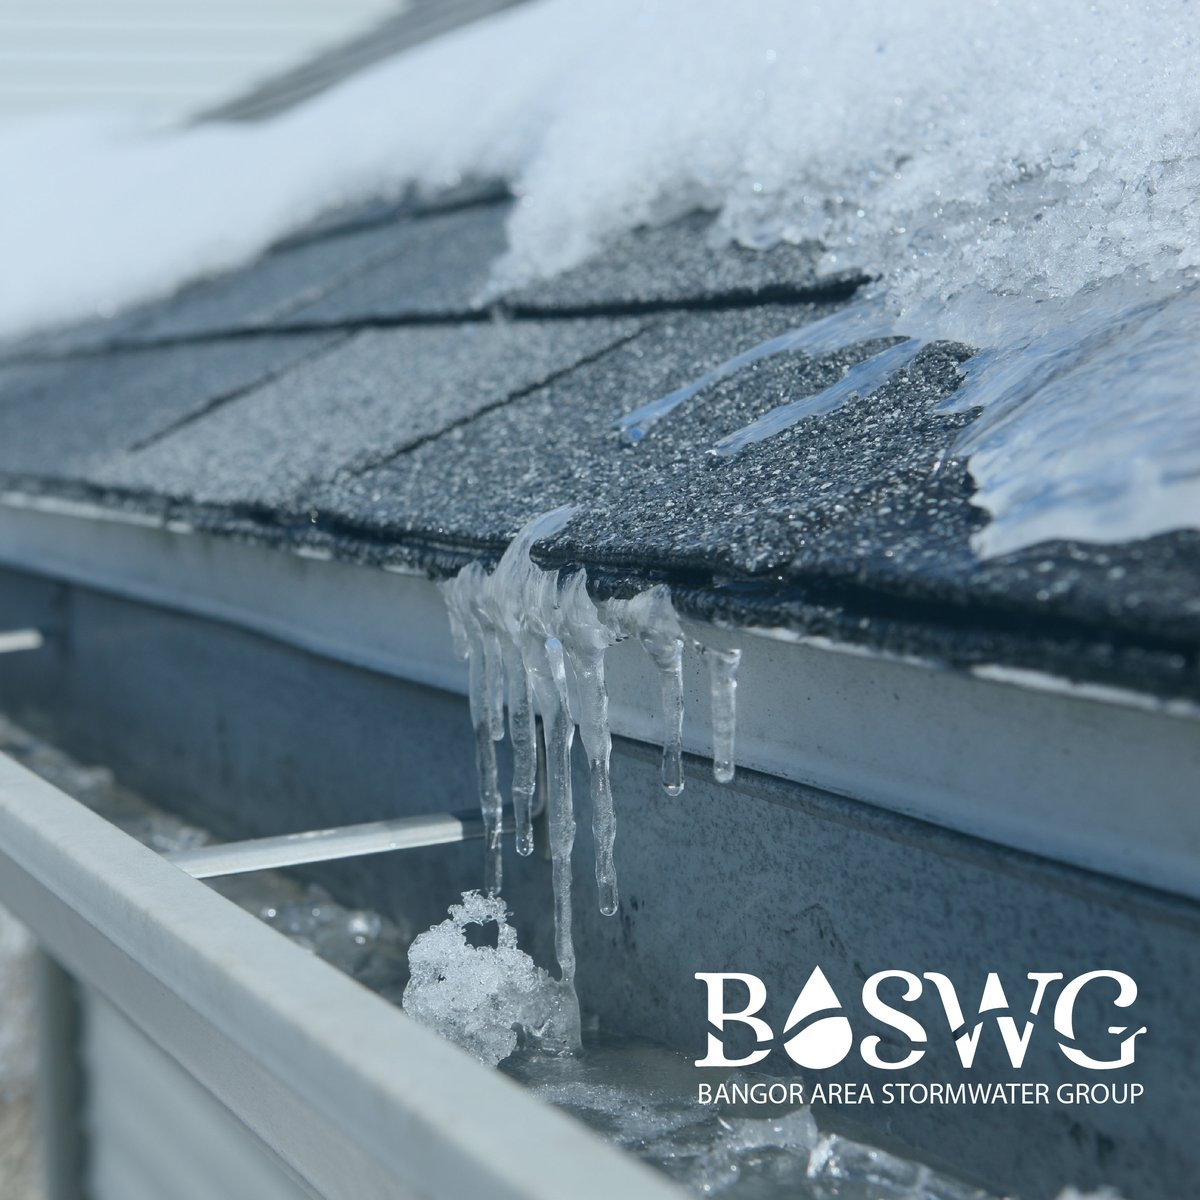 At home winter maintenance can help prevent stormwater runoff. Taking the time to keep gutters and drainage paths free of winter debris can prevent snowmelt from backing up and forming ice where your runoff should flow freely!  #Stormwater #Winter #Runoff https://t.co/uEn8GGQyYN